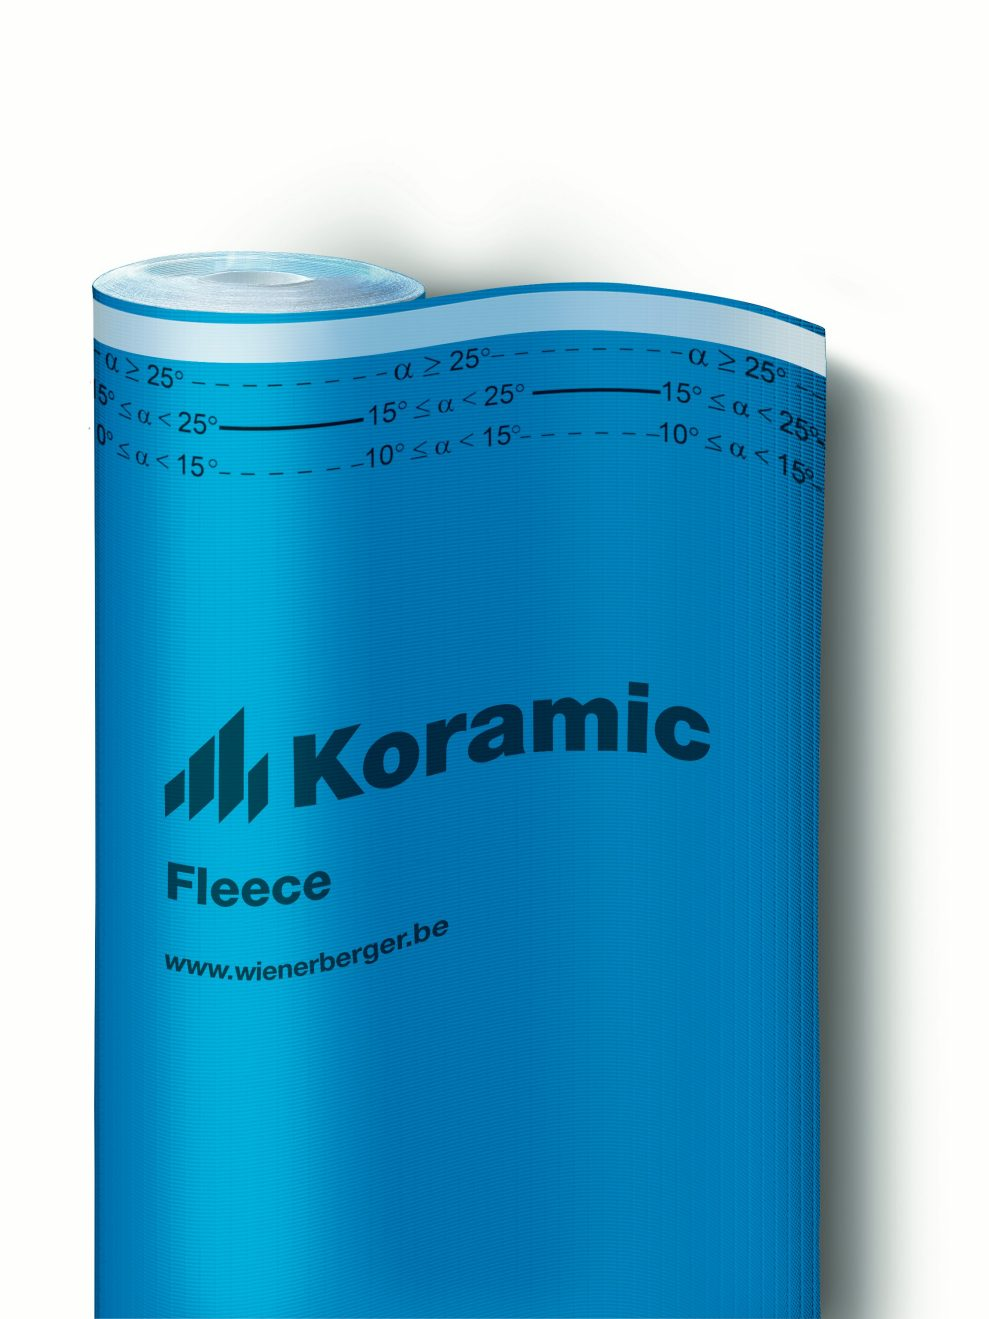 Koramic Fleece